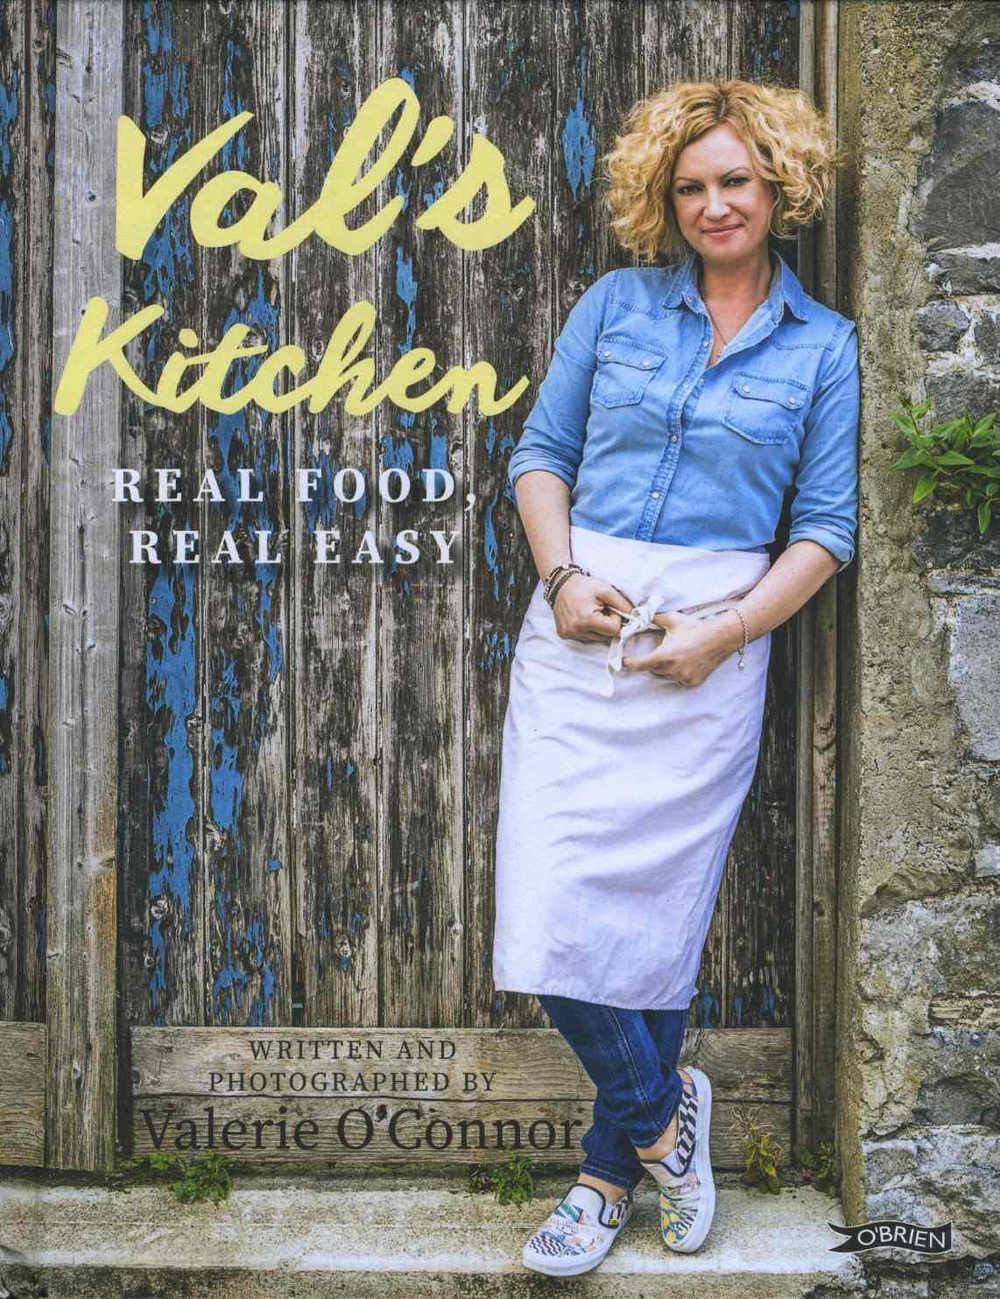 Val's Kitchen Real Food, Real Easy by Valerie O'Connor (Brien Press; hardback, 246x189mm, 160pp; photography by the author; €19.99/£14.99)